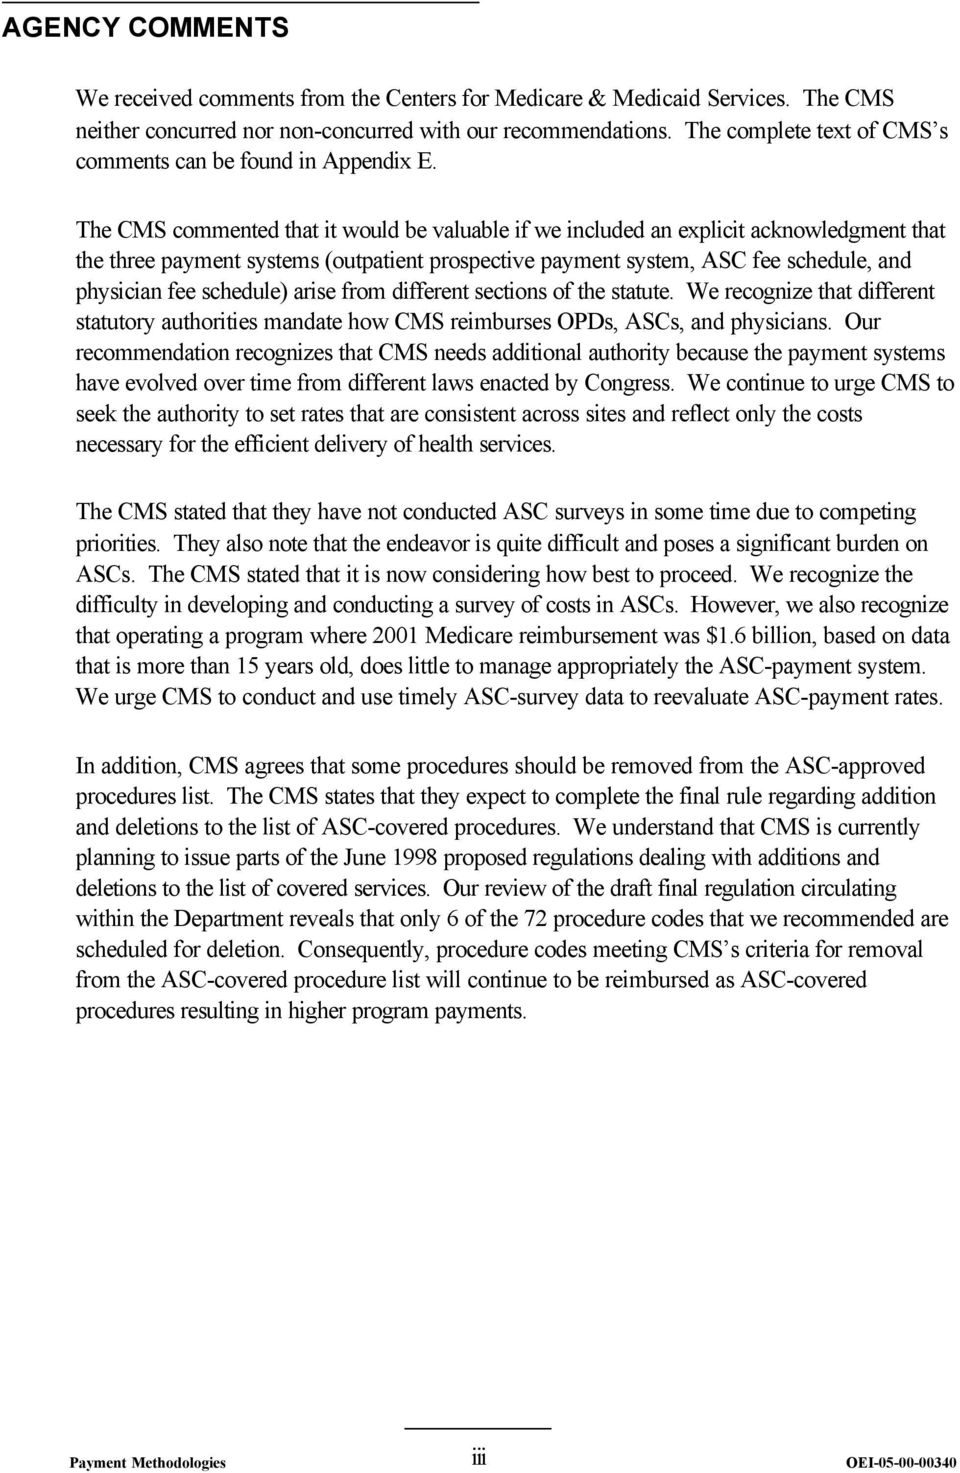 The CMS commented that it would be valuable if we included an explicit acknowledgment that the three payment systems (outpatient prospective payment system, ASC fee schedule, and physician fee